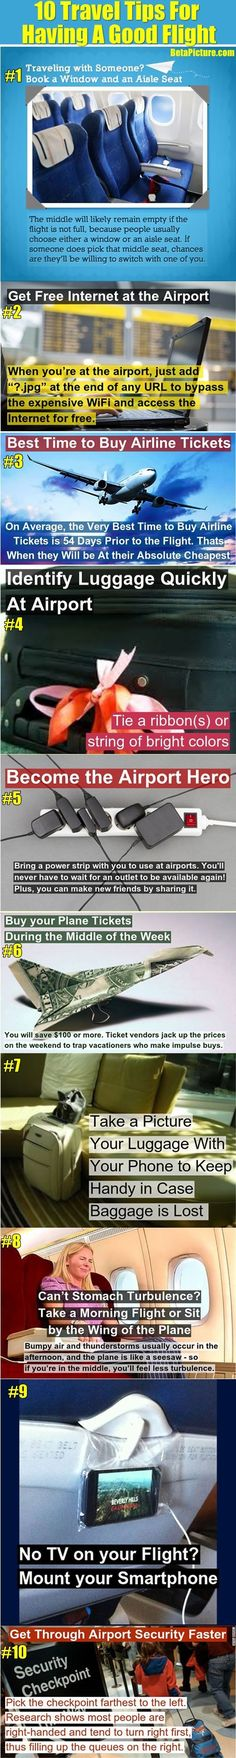 Helpful Life Hack Tips, Let's Make Life Great Again! 10 Travel Tips That You Must Know To Have A Good Flight. Loving that power strip idea! Such a good Travel Tips That You Must Know To Have A Good Flight. Loving that power strip idea! Travel Info, Travel Packing, Time Travel, Places To Travel, Travel Tips, Travel Destinations, Travel Hacks, Packing Tips, Travel Stuff